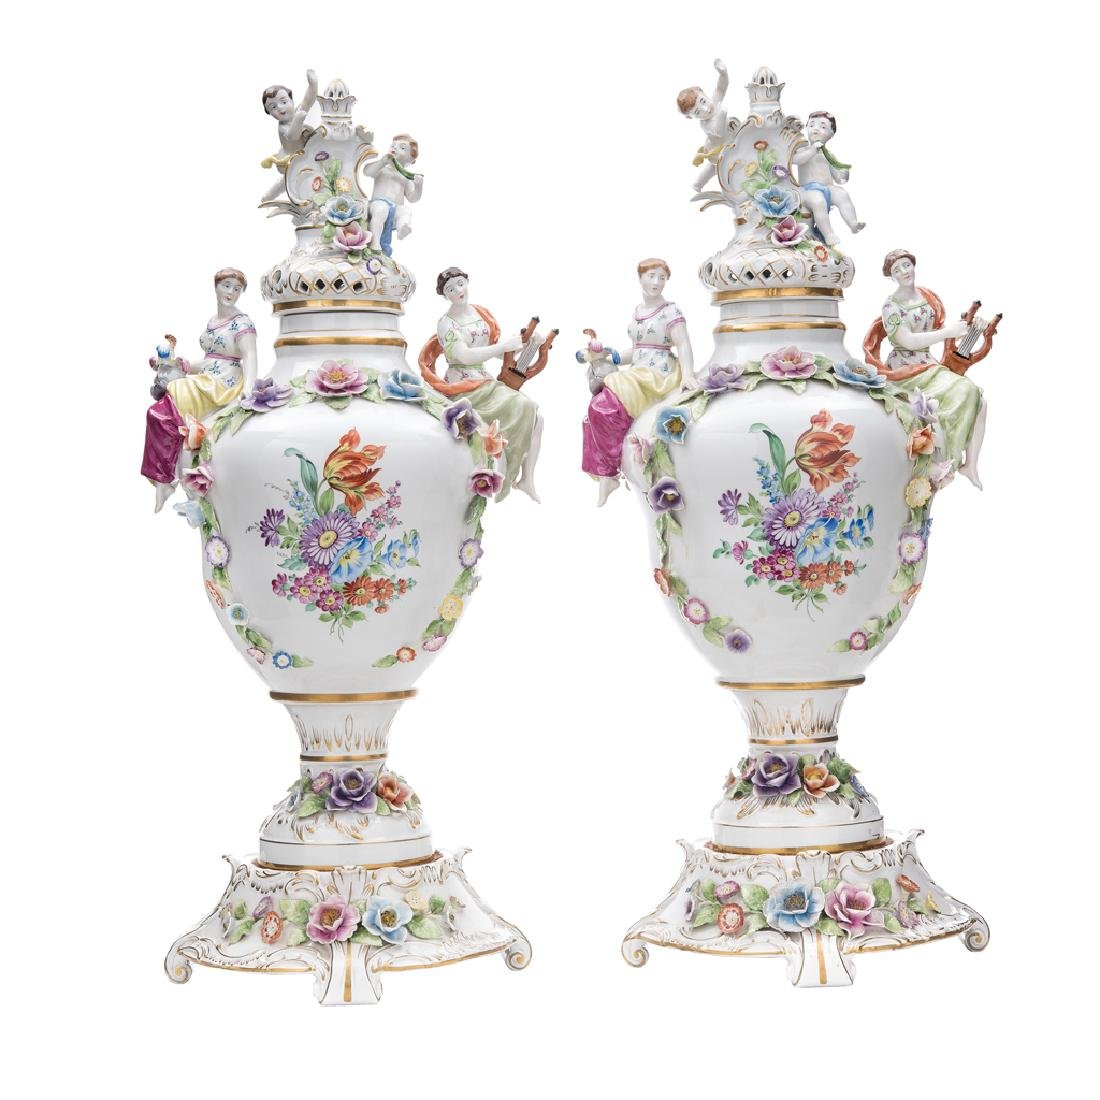 A PAIR OF VASES. GERMANY, 20th CENTURY. Brand:  PLAUE.